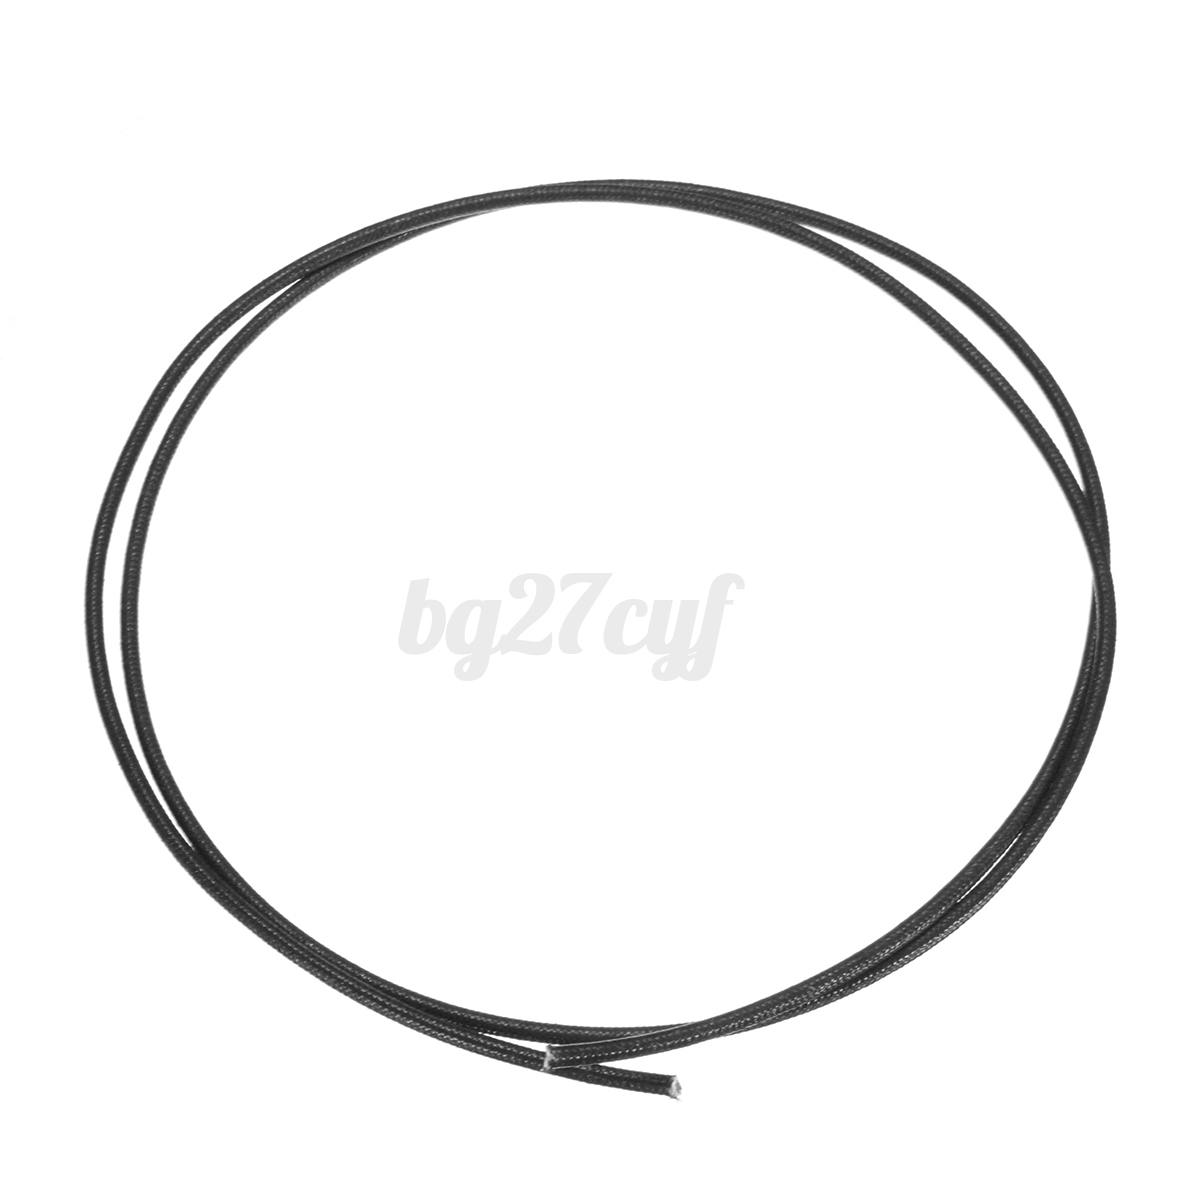 Oven Heat Resistant Appliance Cable Wire 1.5/2.5MM Spare Parts Various Length